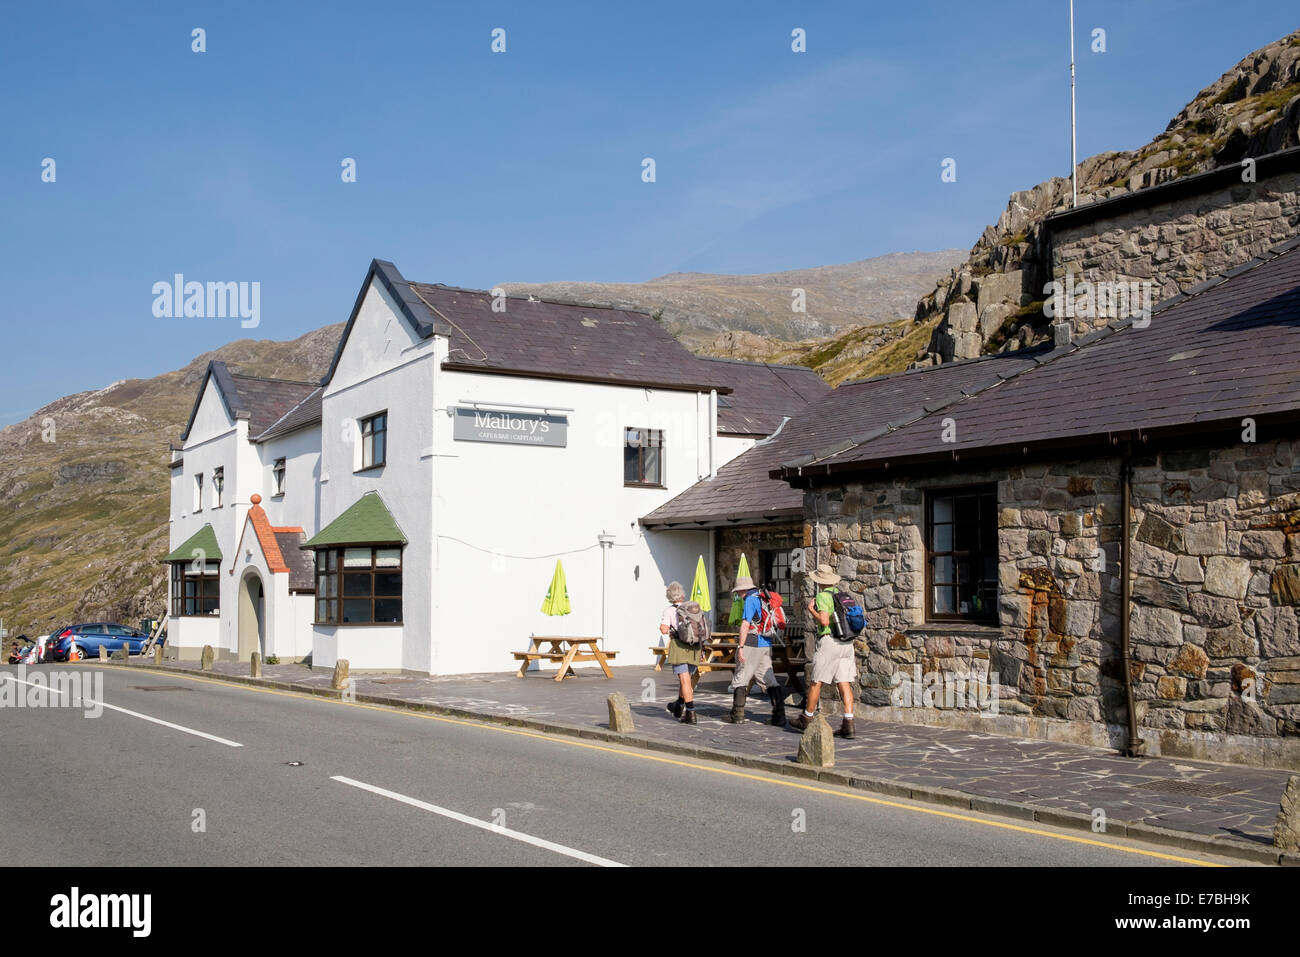 Refurbished Pen-y-Pass YHA youth hostel with new Mallory's cafe and bar in Snowdonia National Park North Wales - Stock Image